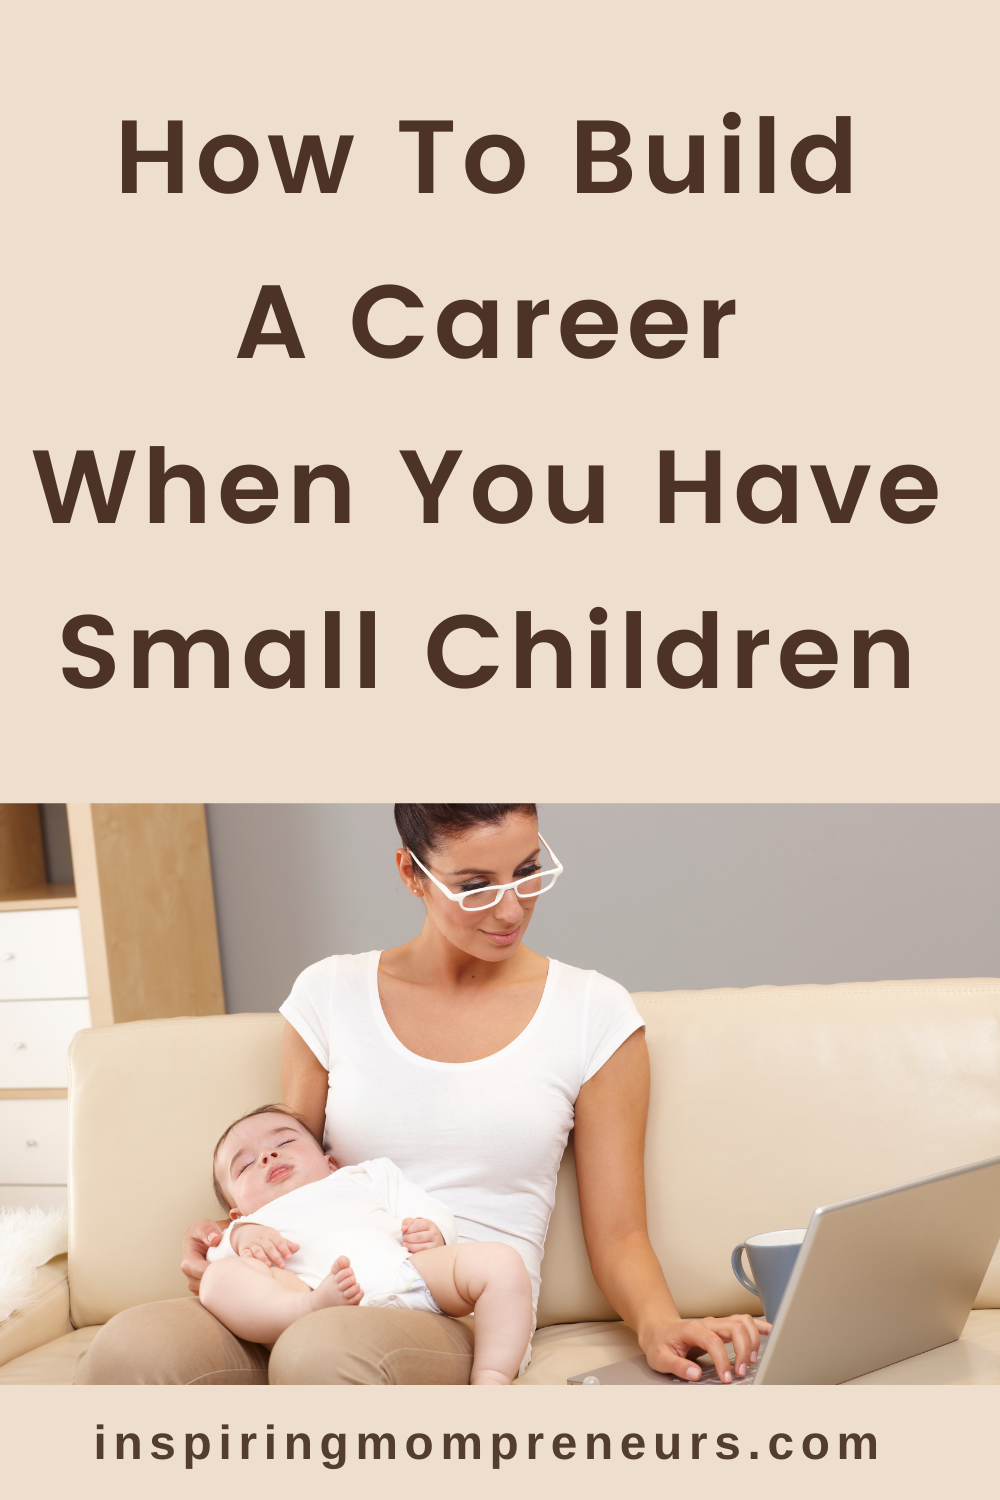 How To Build A Career When You Have Small Children